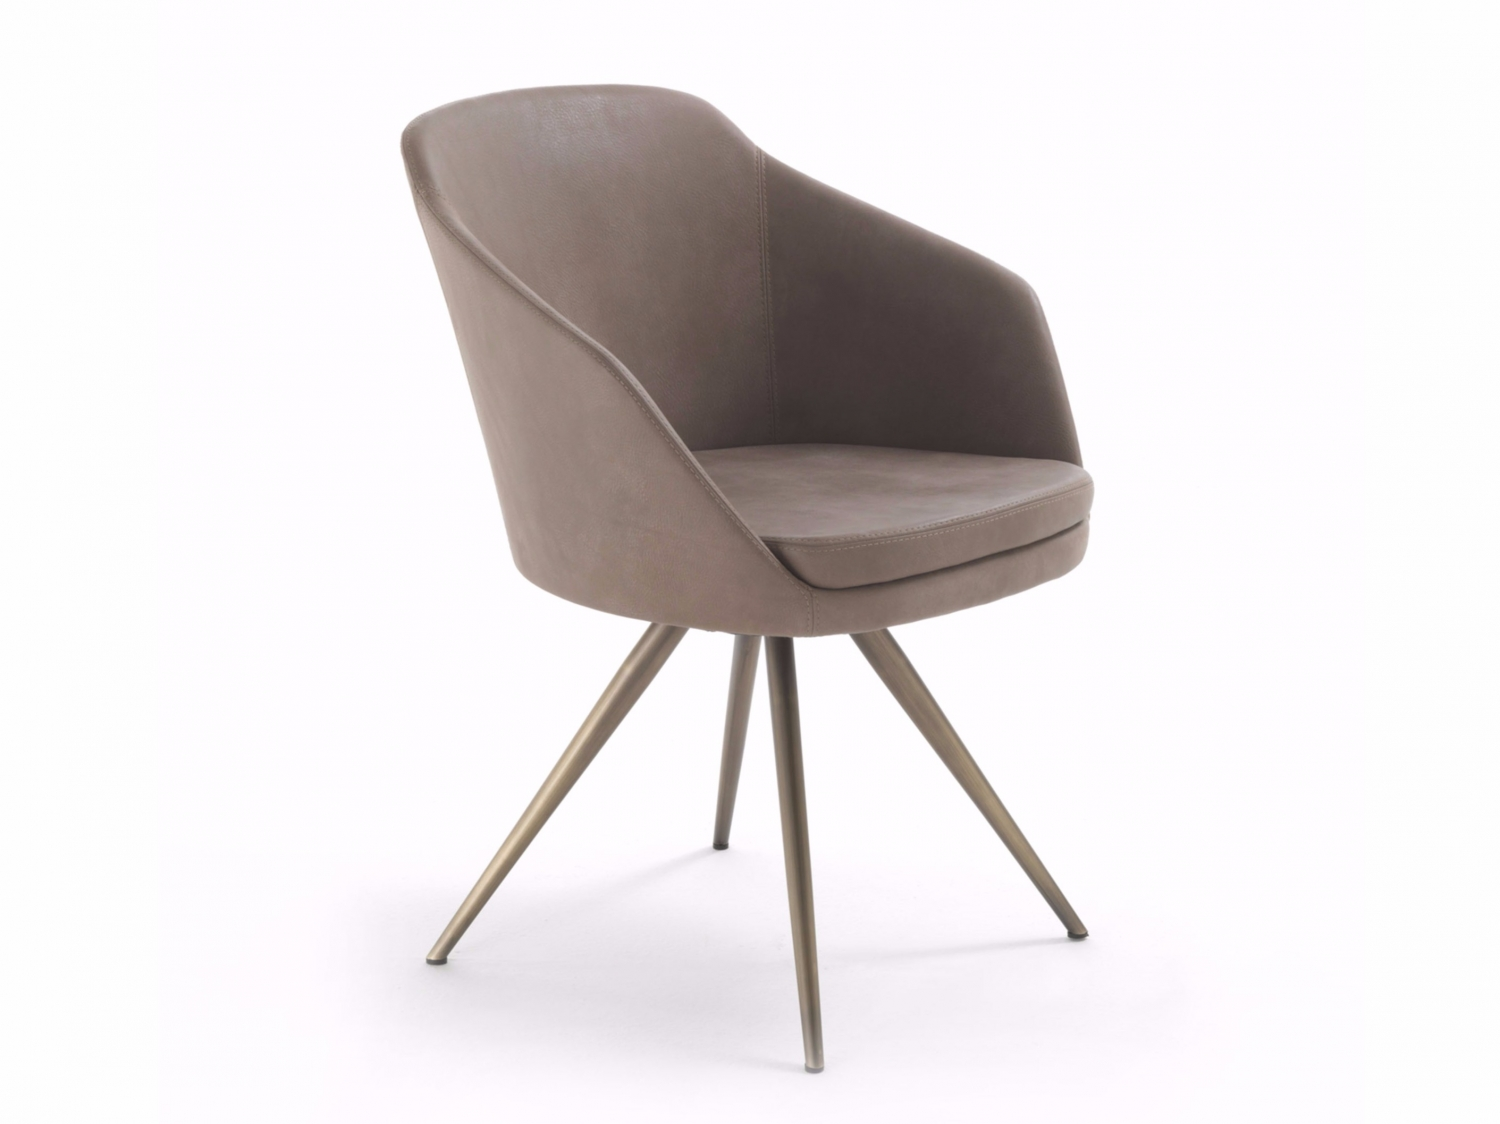 Arm Chair Riva 1920 Chair